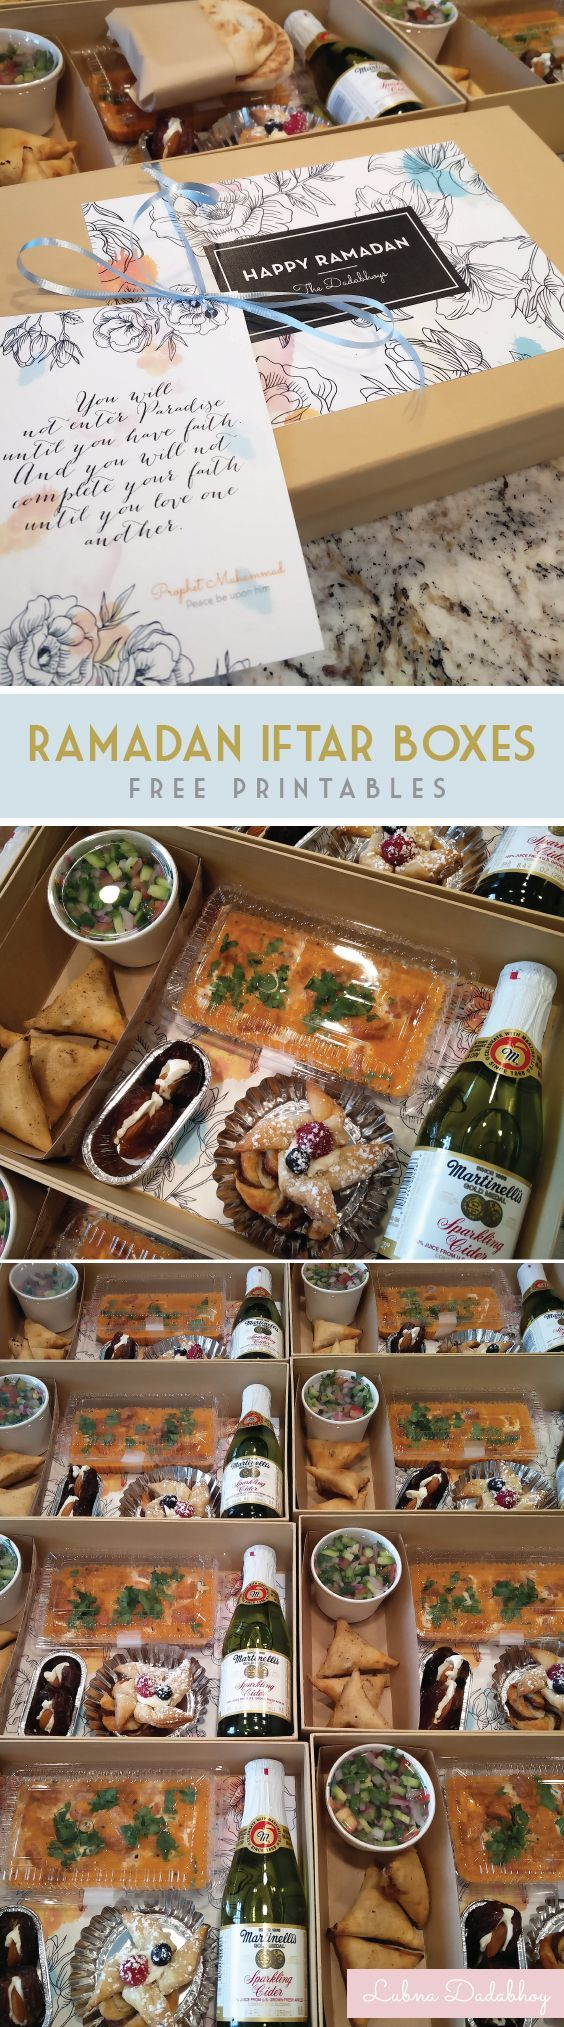 Iftar Gift Boxes | Eid Decoration Ideas | Ramadan Dessert Table | Eid Decoration Ideas | Ramadan Kareem | Ramadan Mubarak | Eid Mubarak | Iftar Party Table Setting | Iftar Ideas | DIY | Dining | Entertaining | Festival | Ramzan | Eid Printables |  Repinned by @purplevelvetpro | www.purplevelvetproject.com